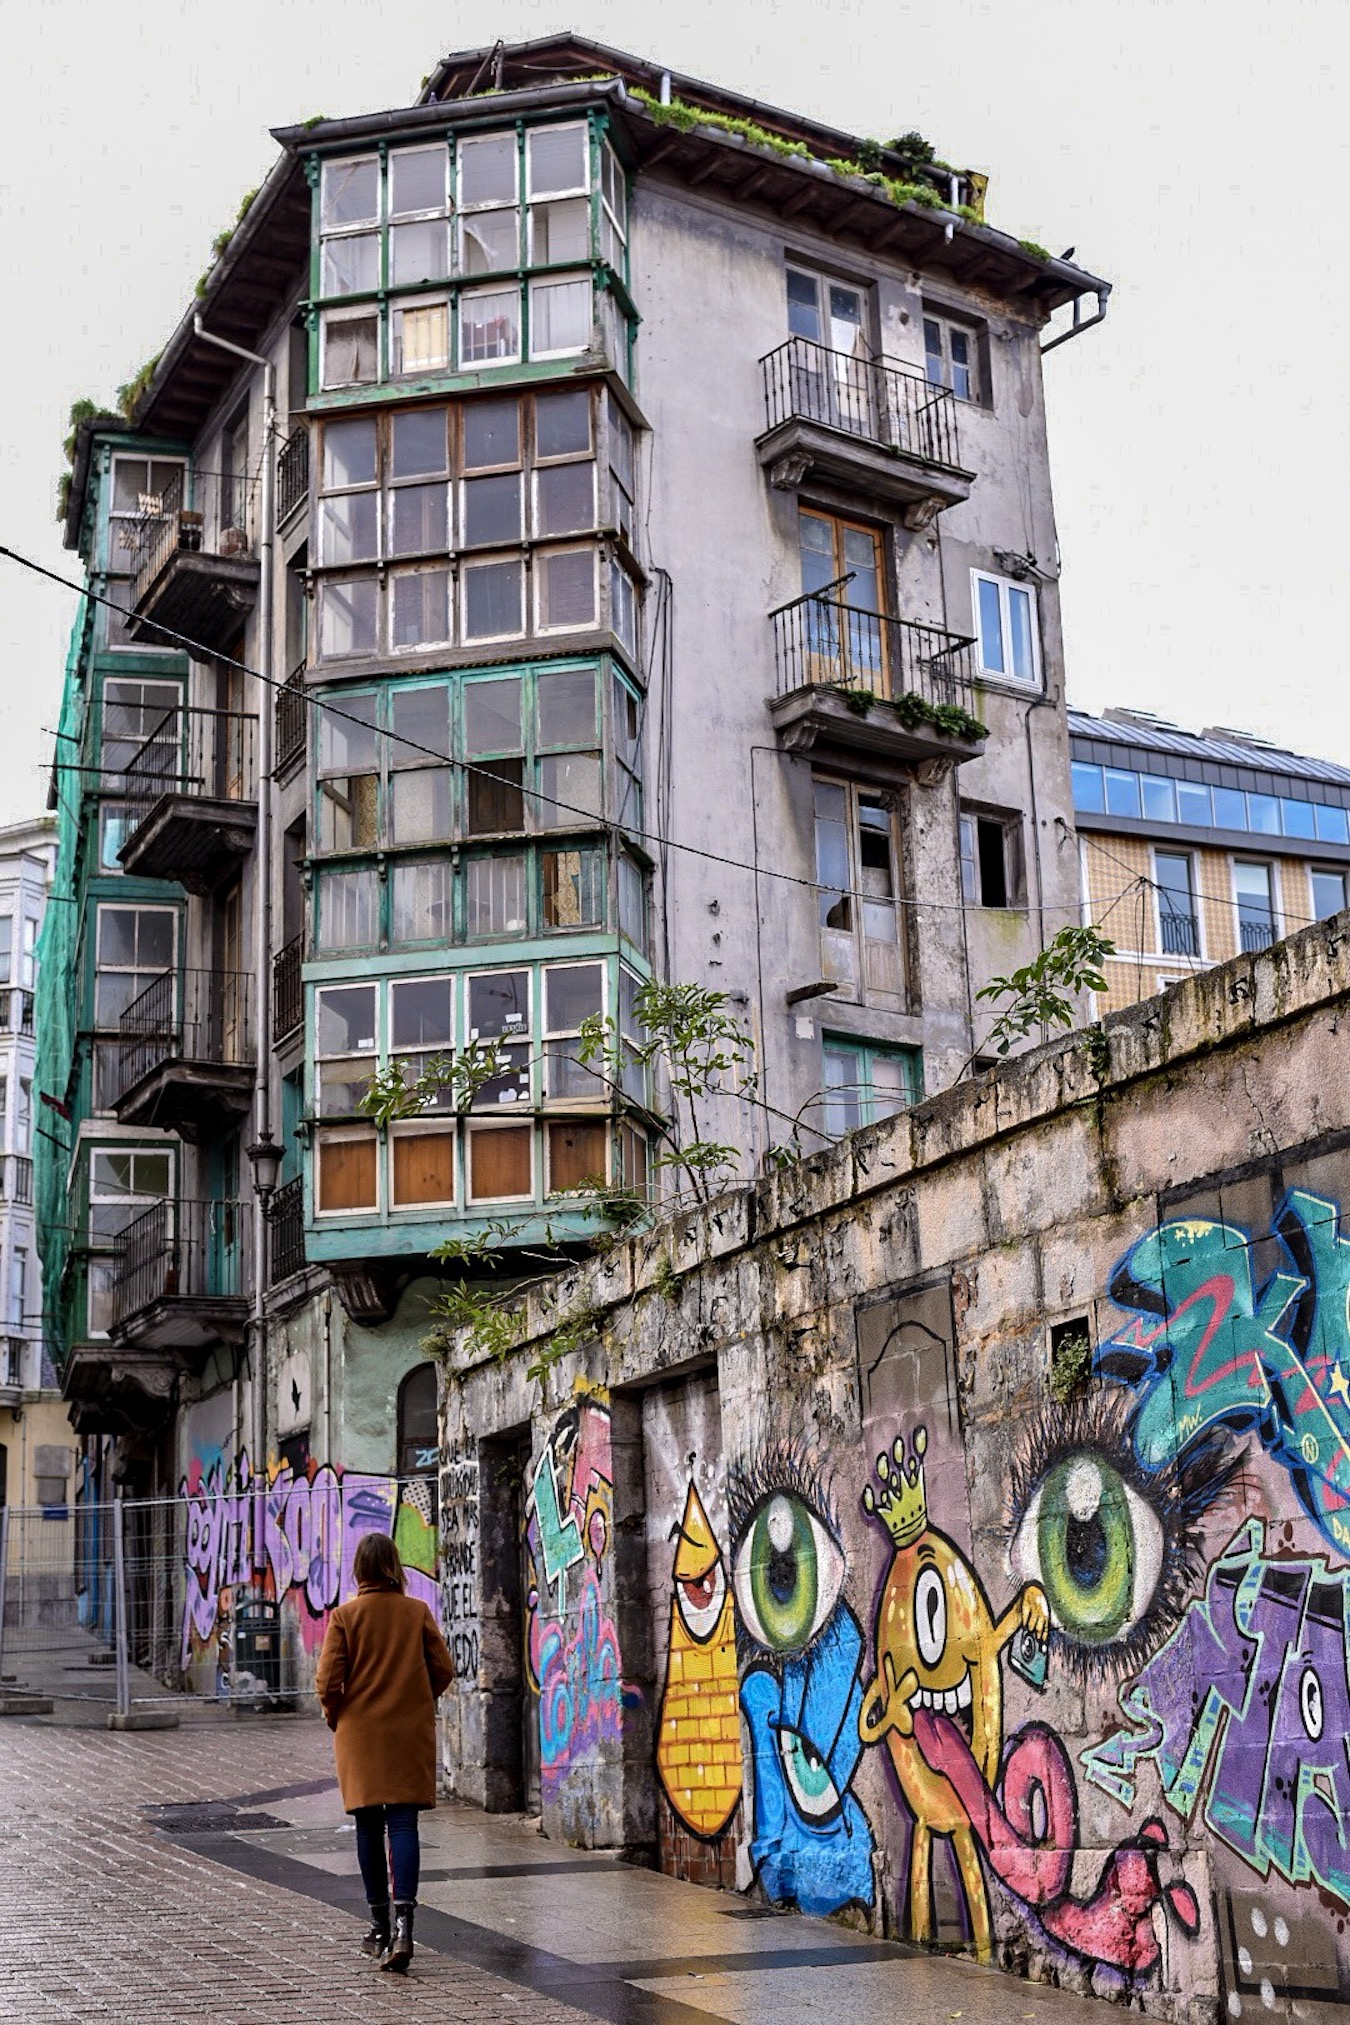 Street art in Santander, northern Spain